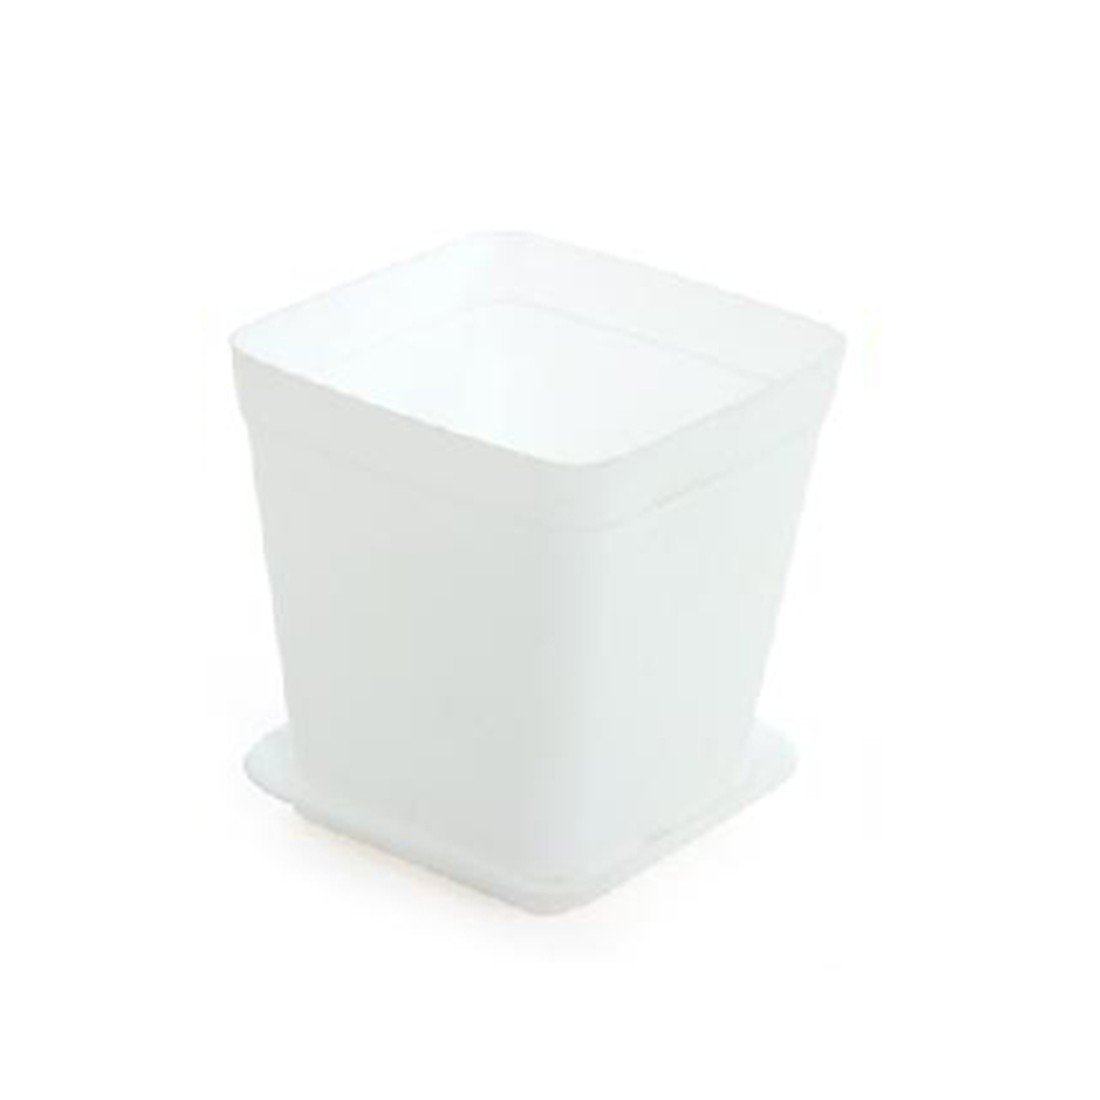 6 Pcs Colorful Flower Pot Square Plastic Planter Nursery Garden Desk-White